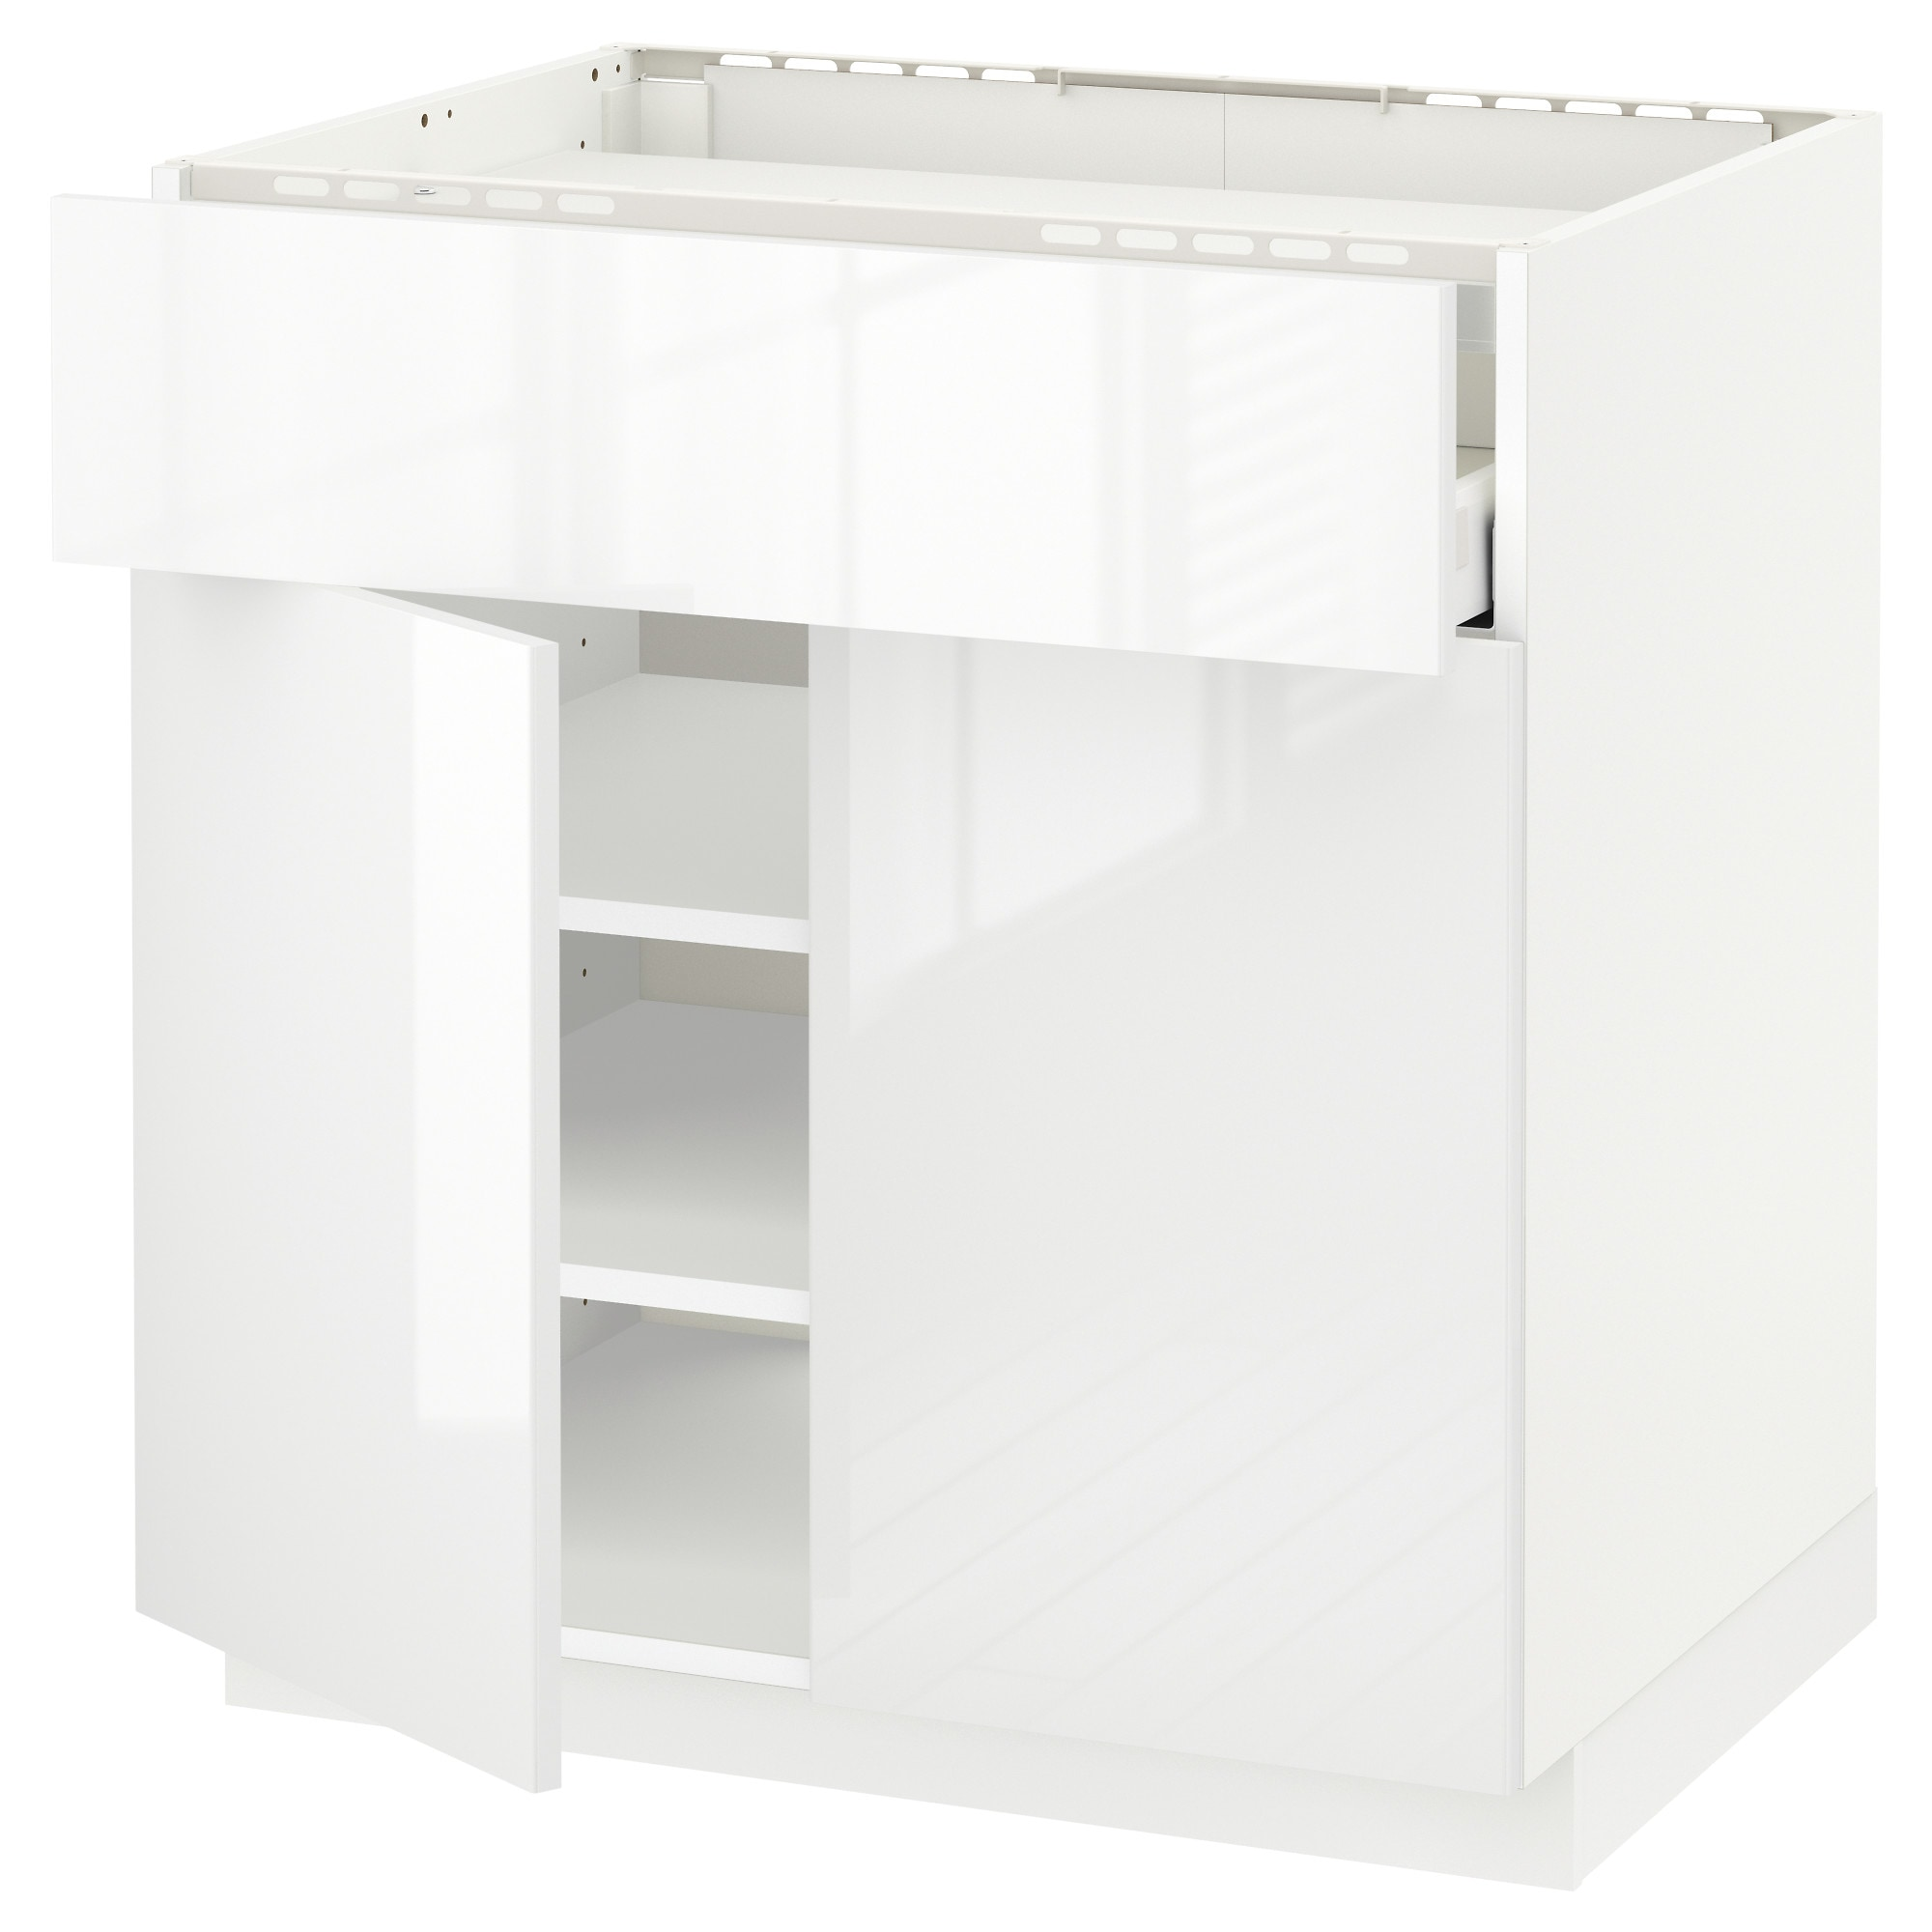 Meuble four encastrable ikea - Meuble four encastrable ikea ...